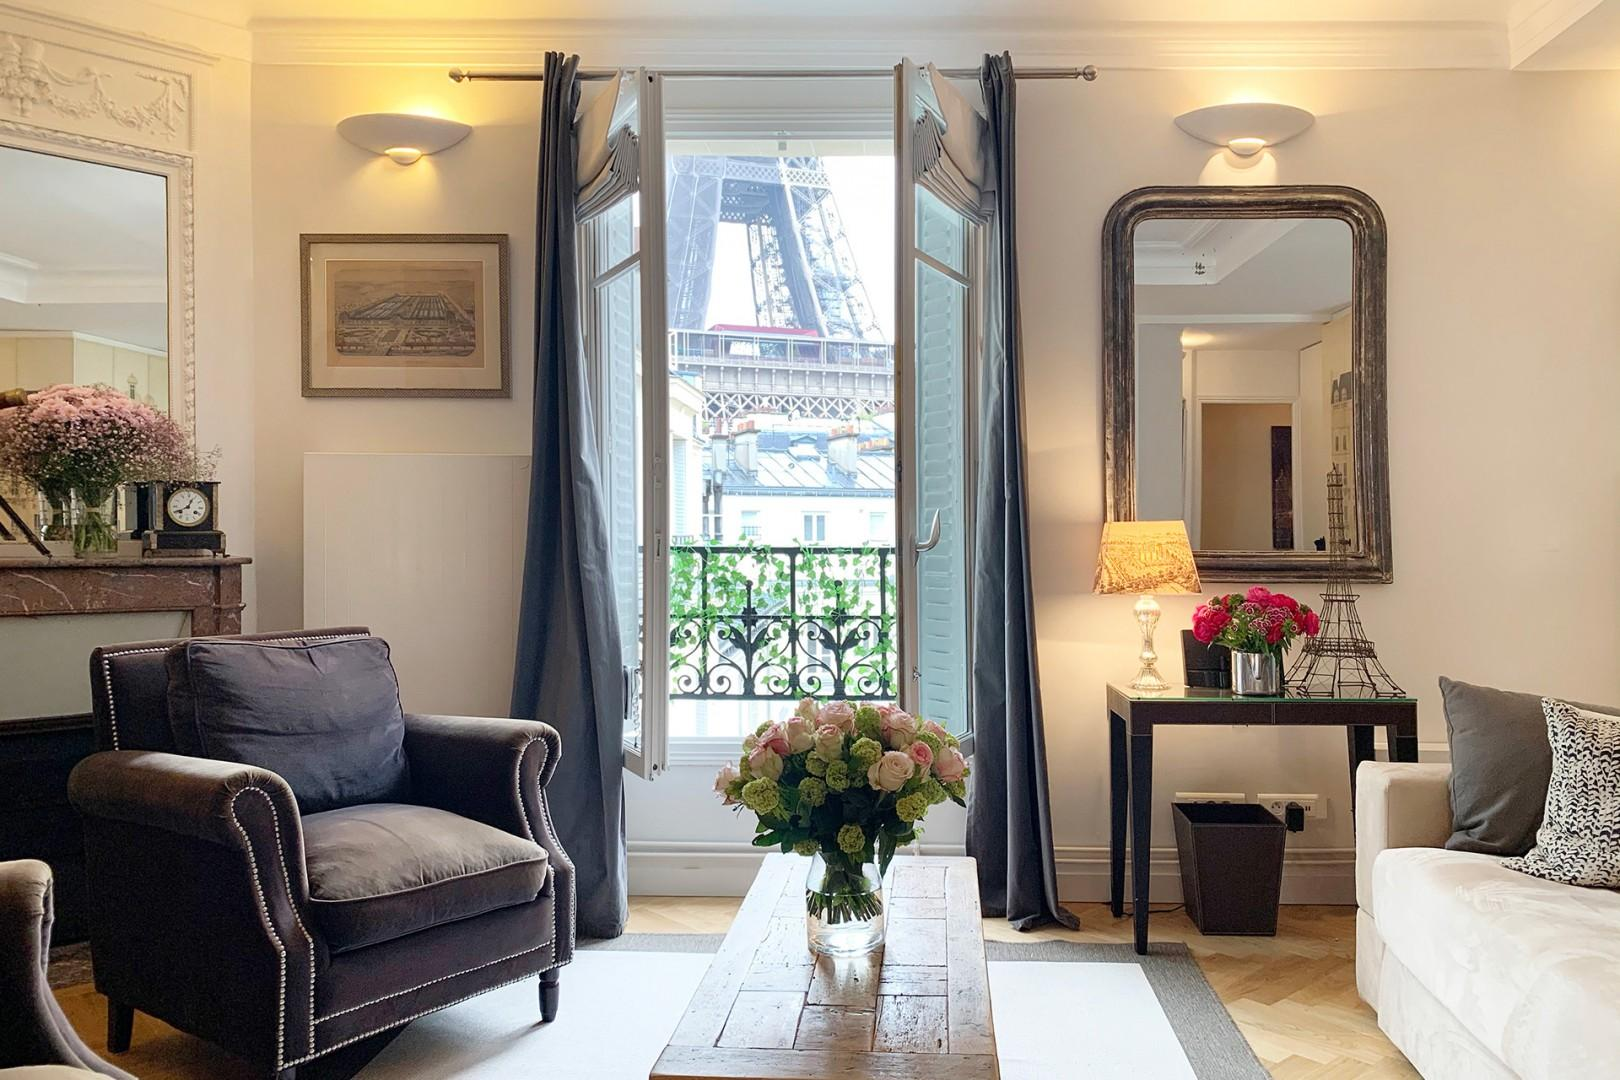 Enjoy the stunning close-up Eiffel Tower view from the living room!